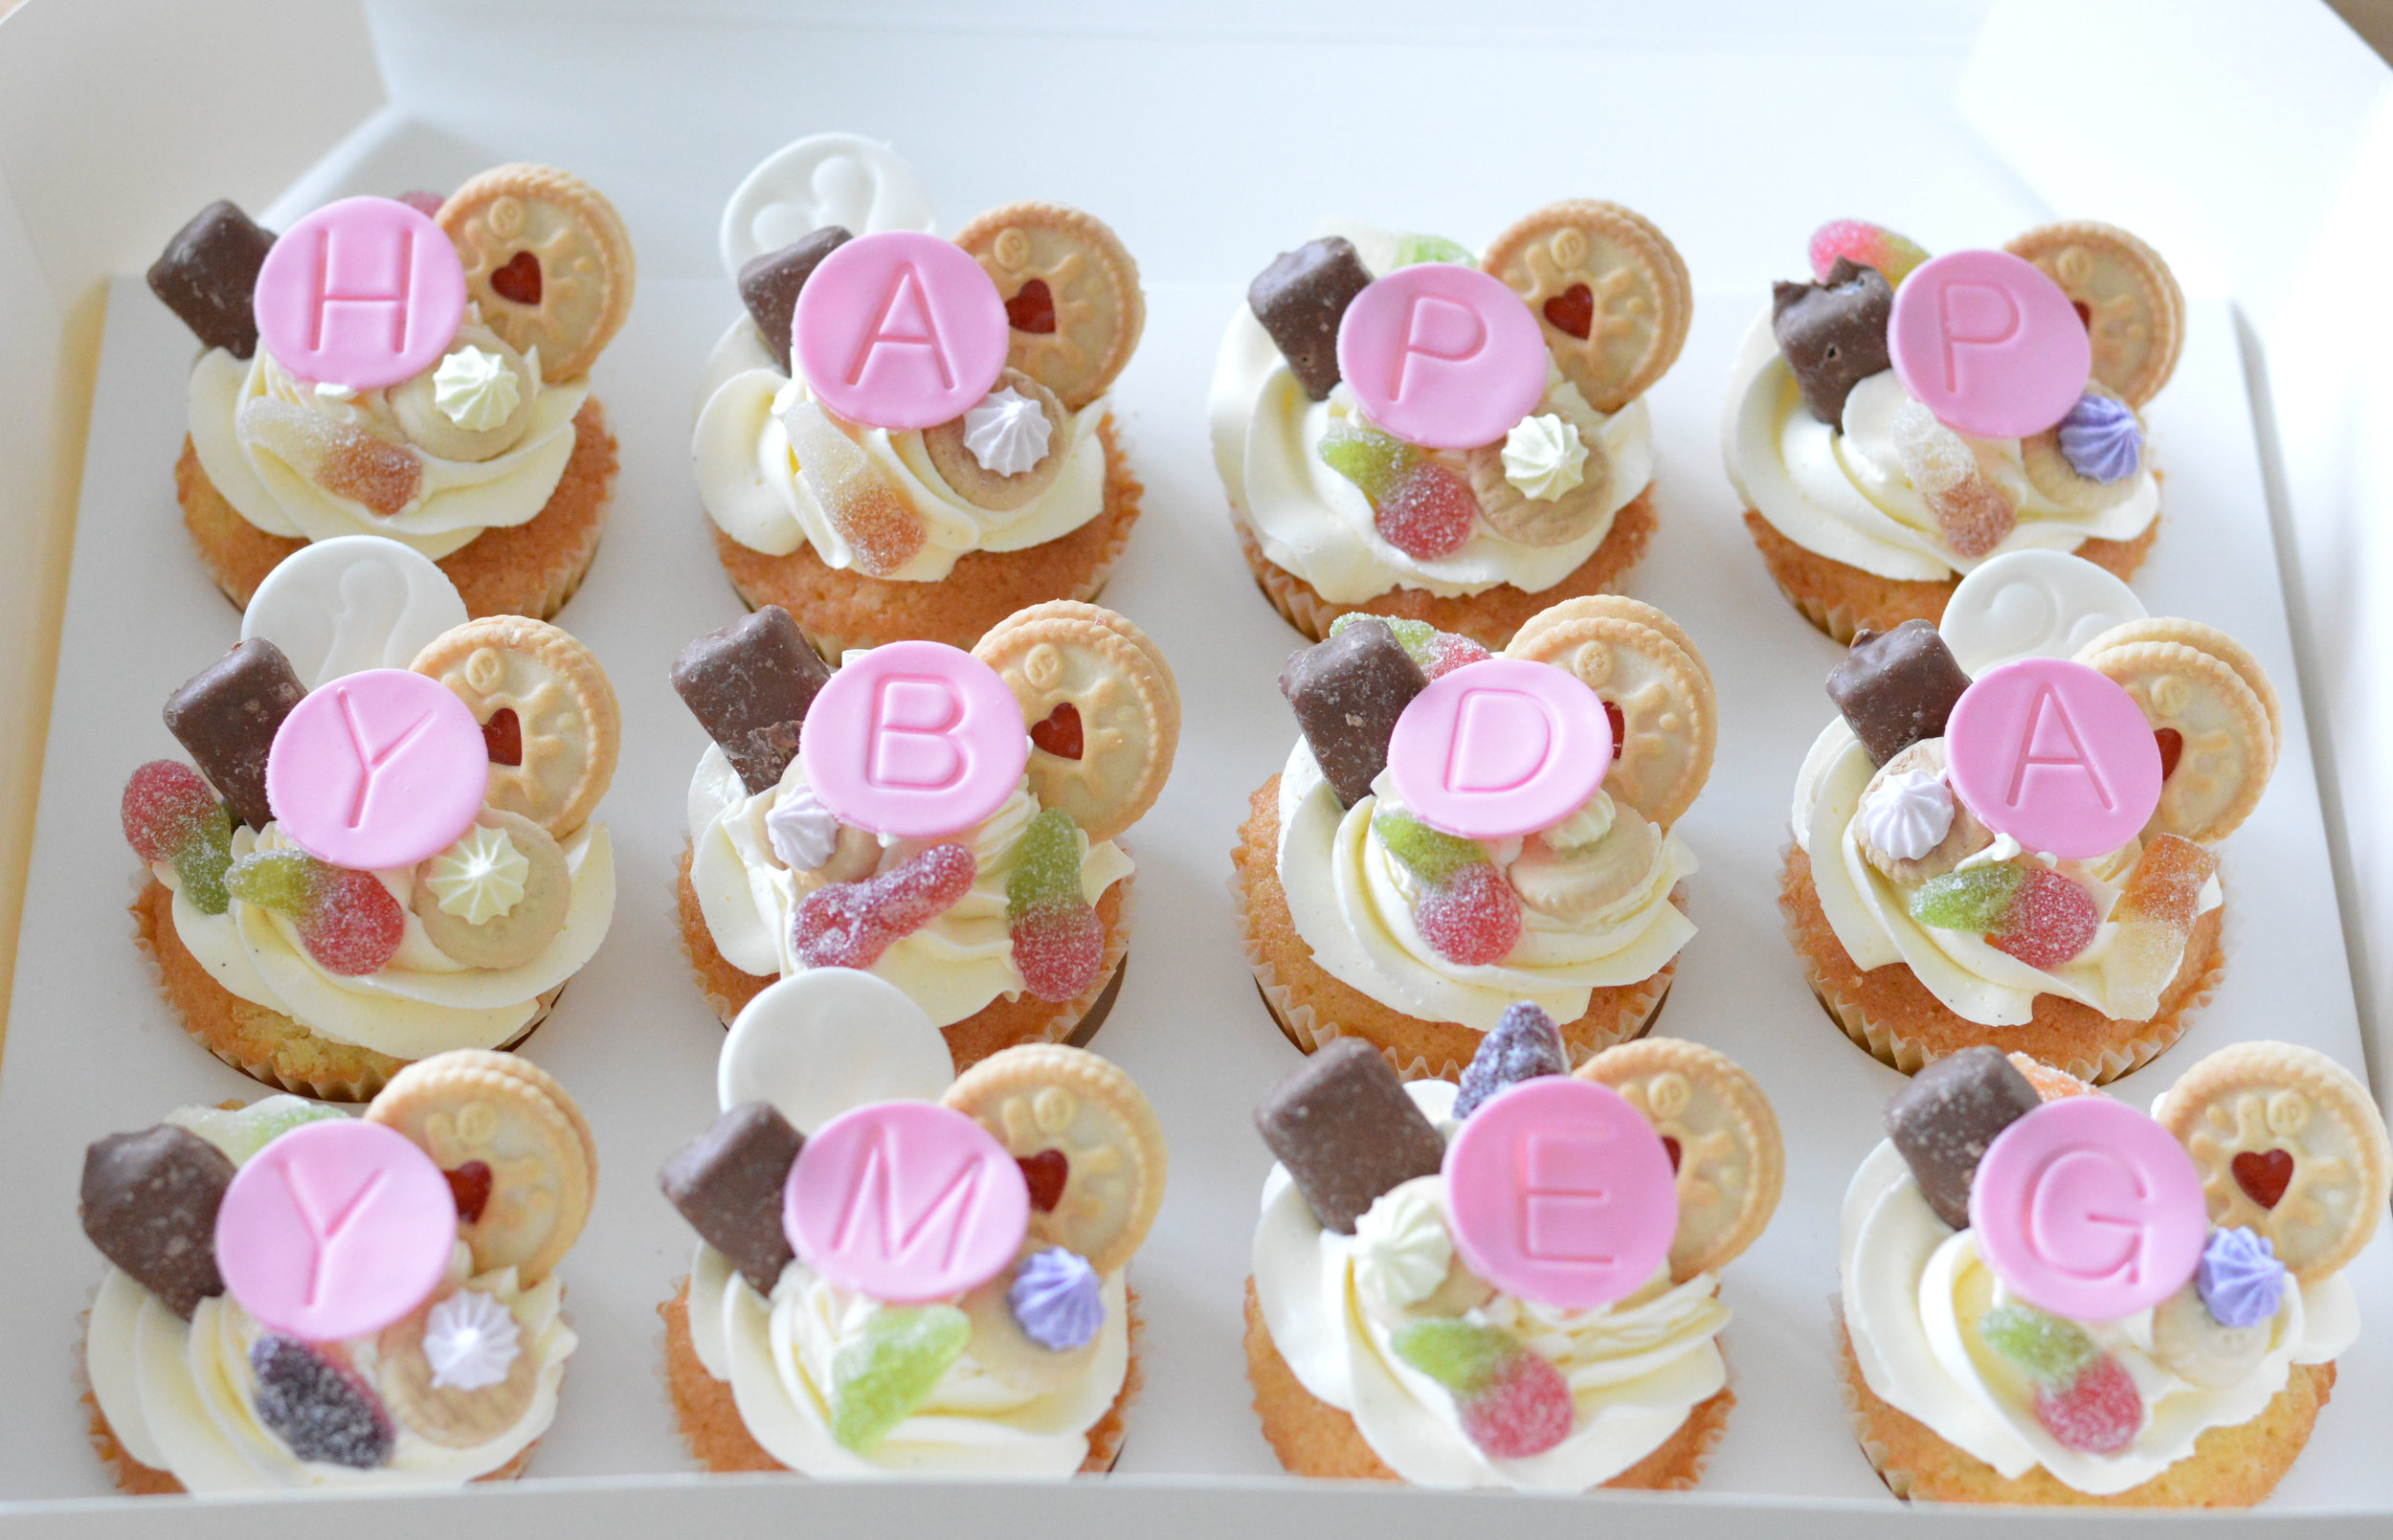 £32.00 for 12  HAPPY BIRTHDAY CUPCAKES - Topped with yummy sweet shop treats and mini biscuits.